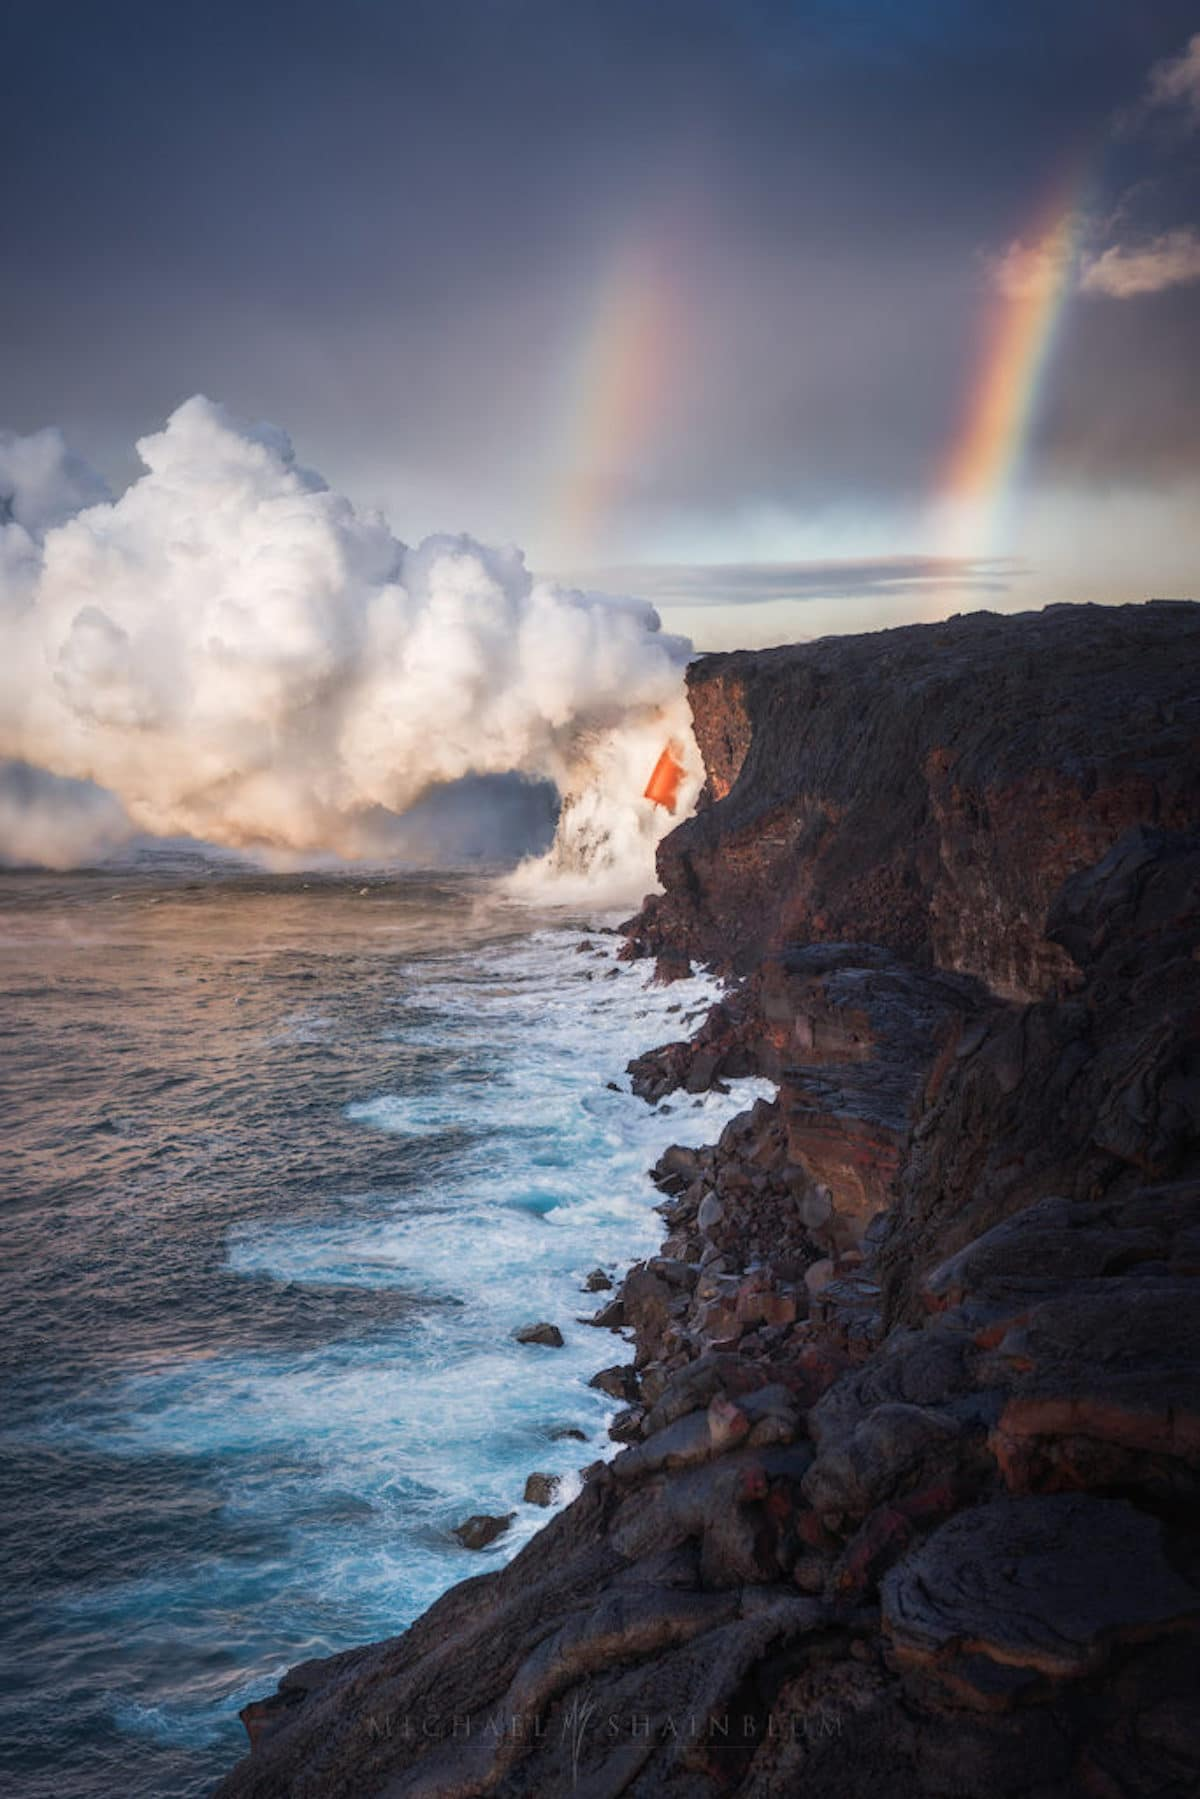 Hawaii Photography by Michael Shainblum